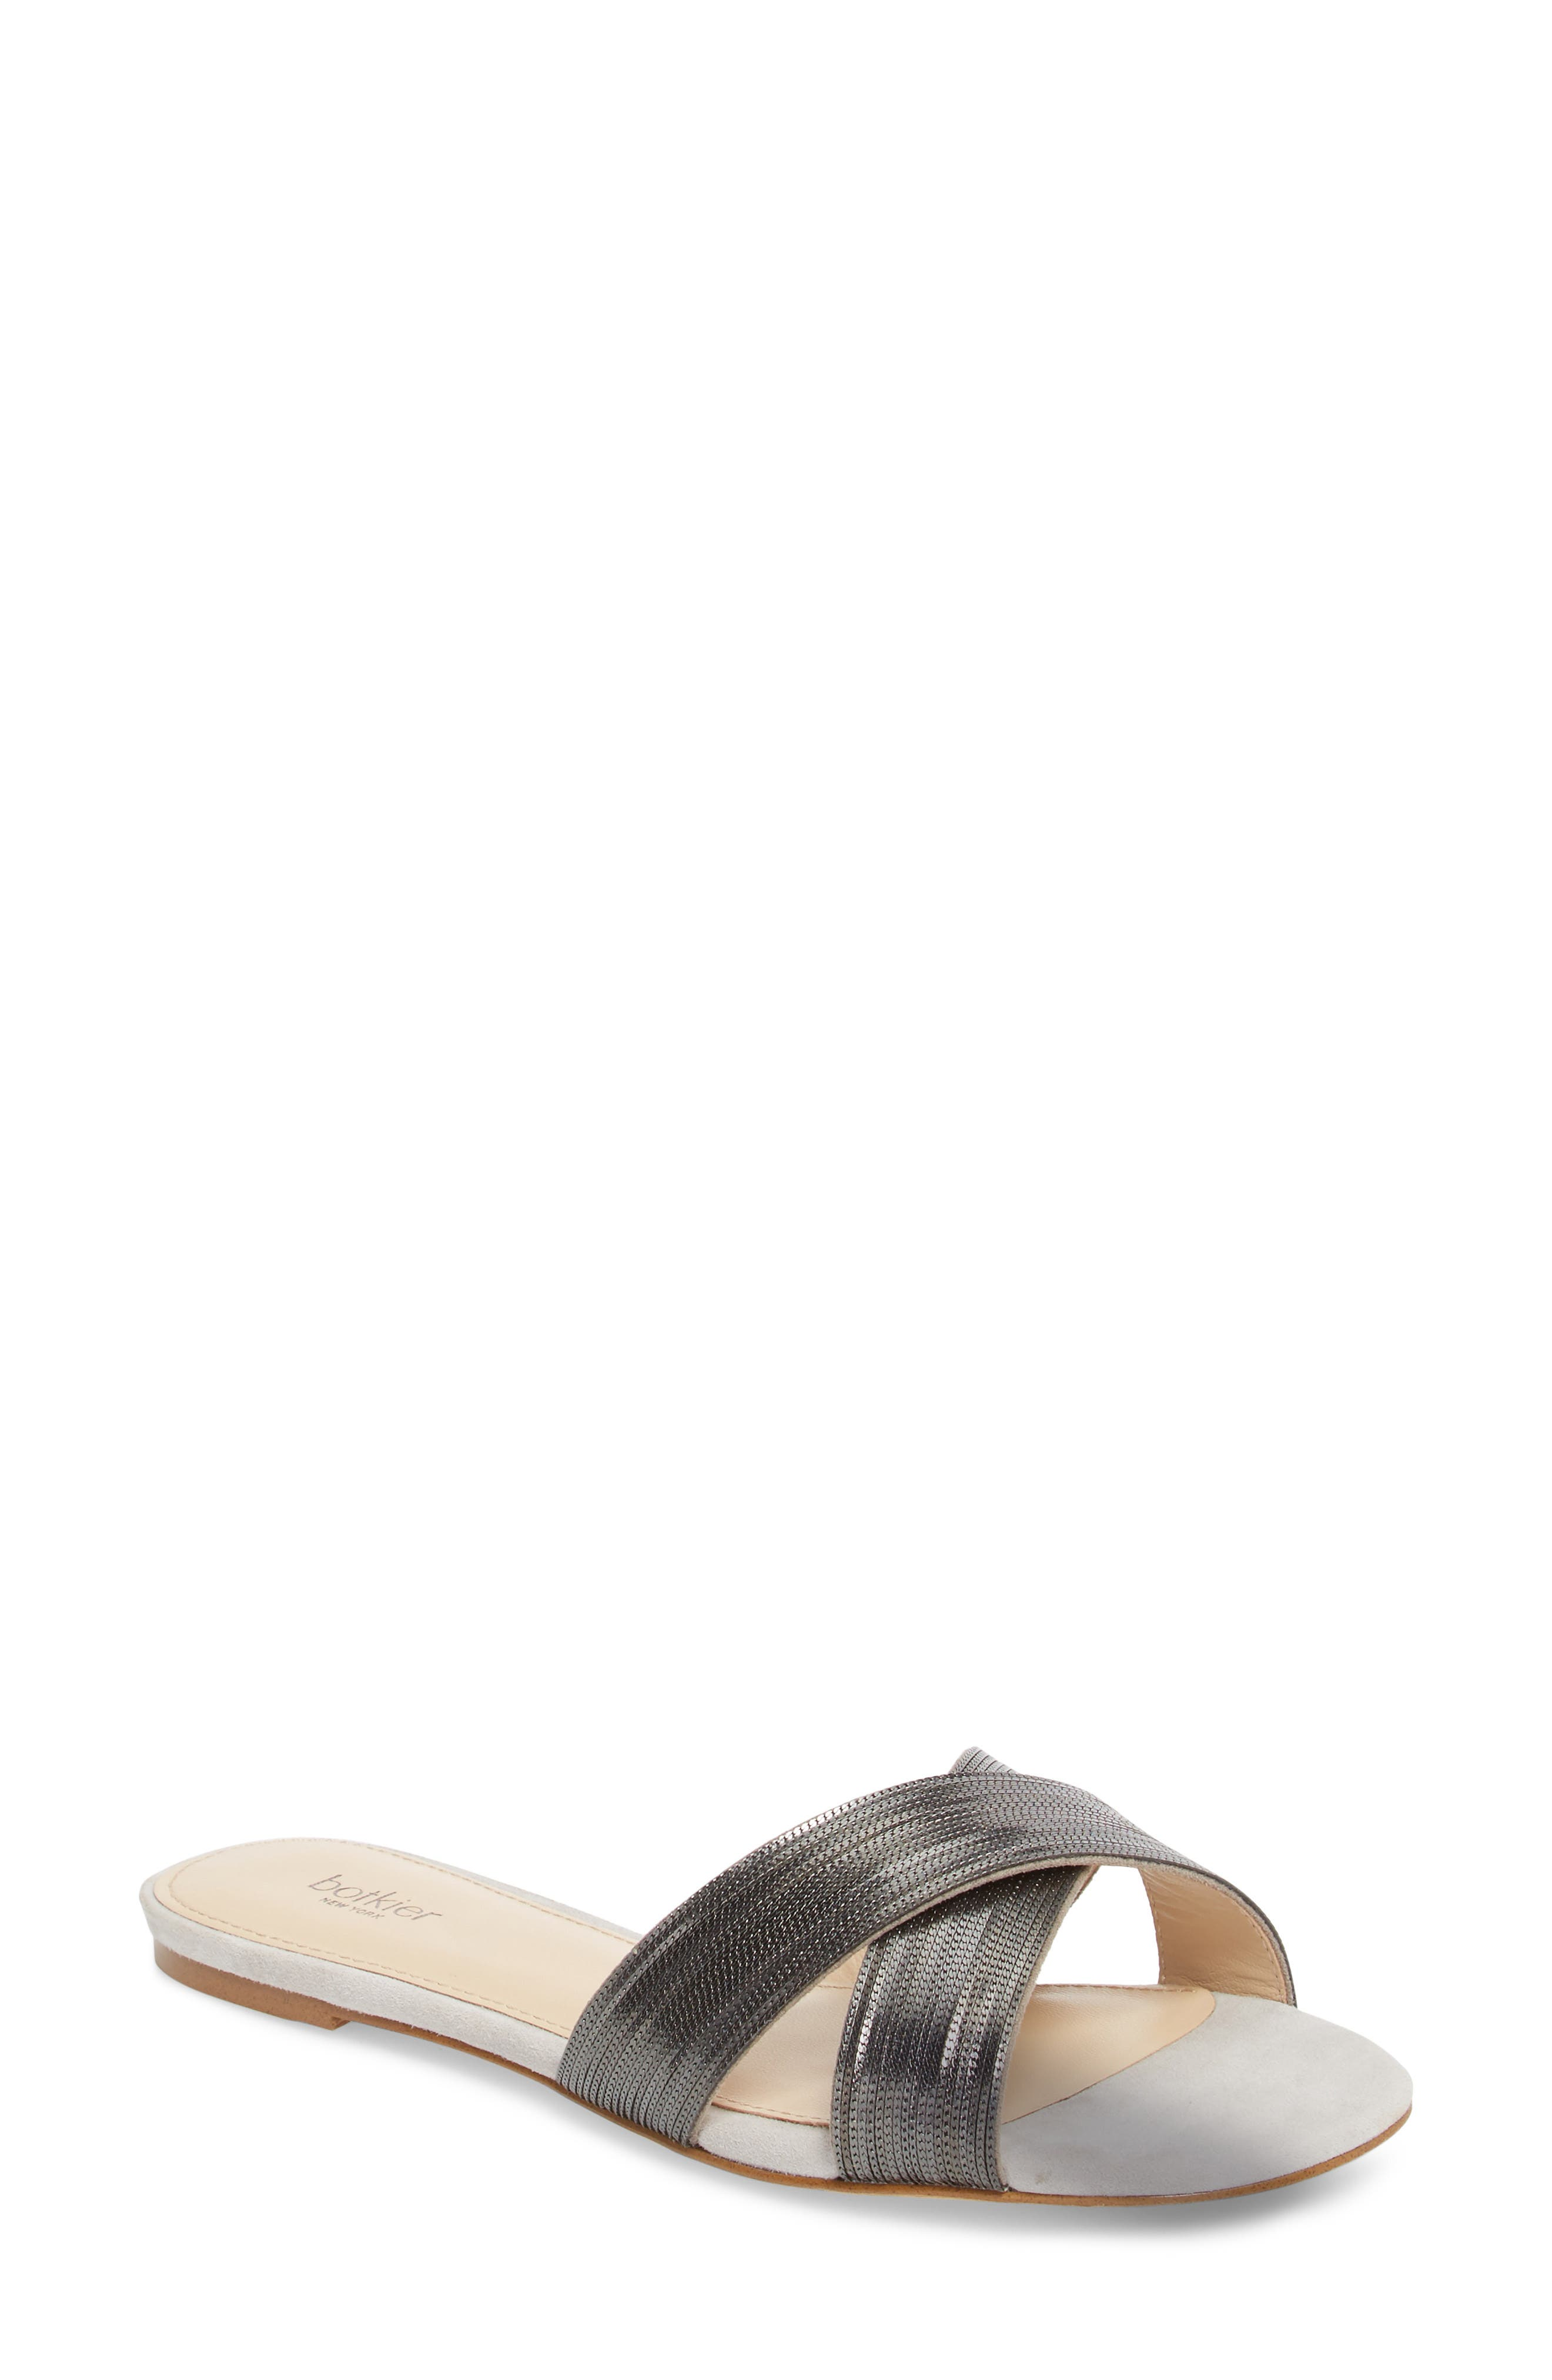 Botkier Millie Cross Strap Slide Sandal (Women)